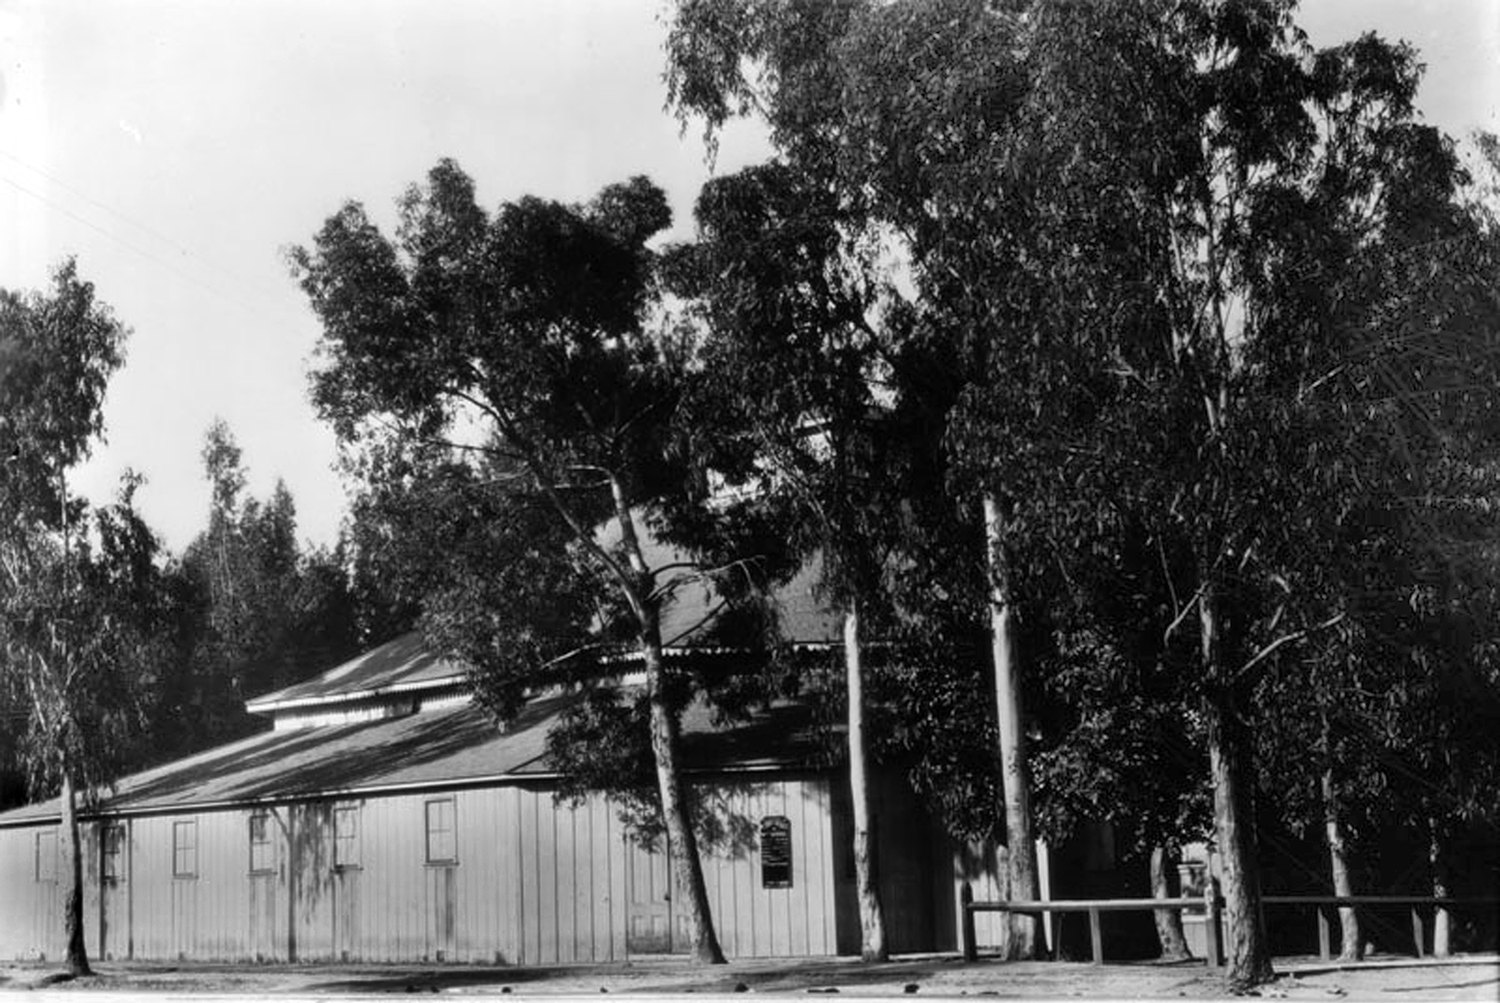 Chautauqua Tabernacle, Long Beach